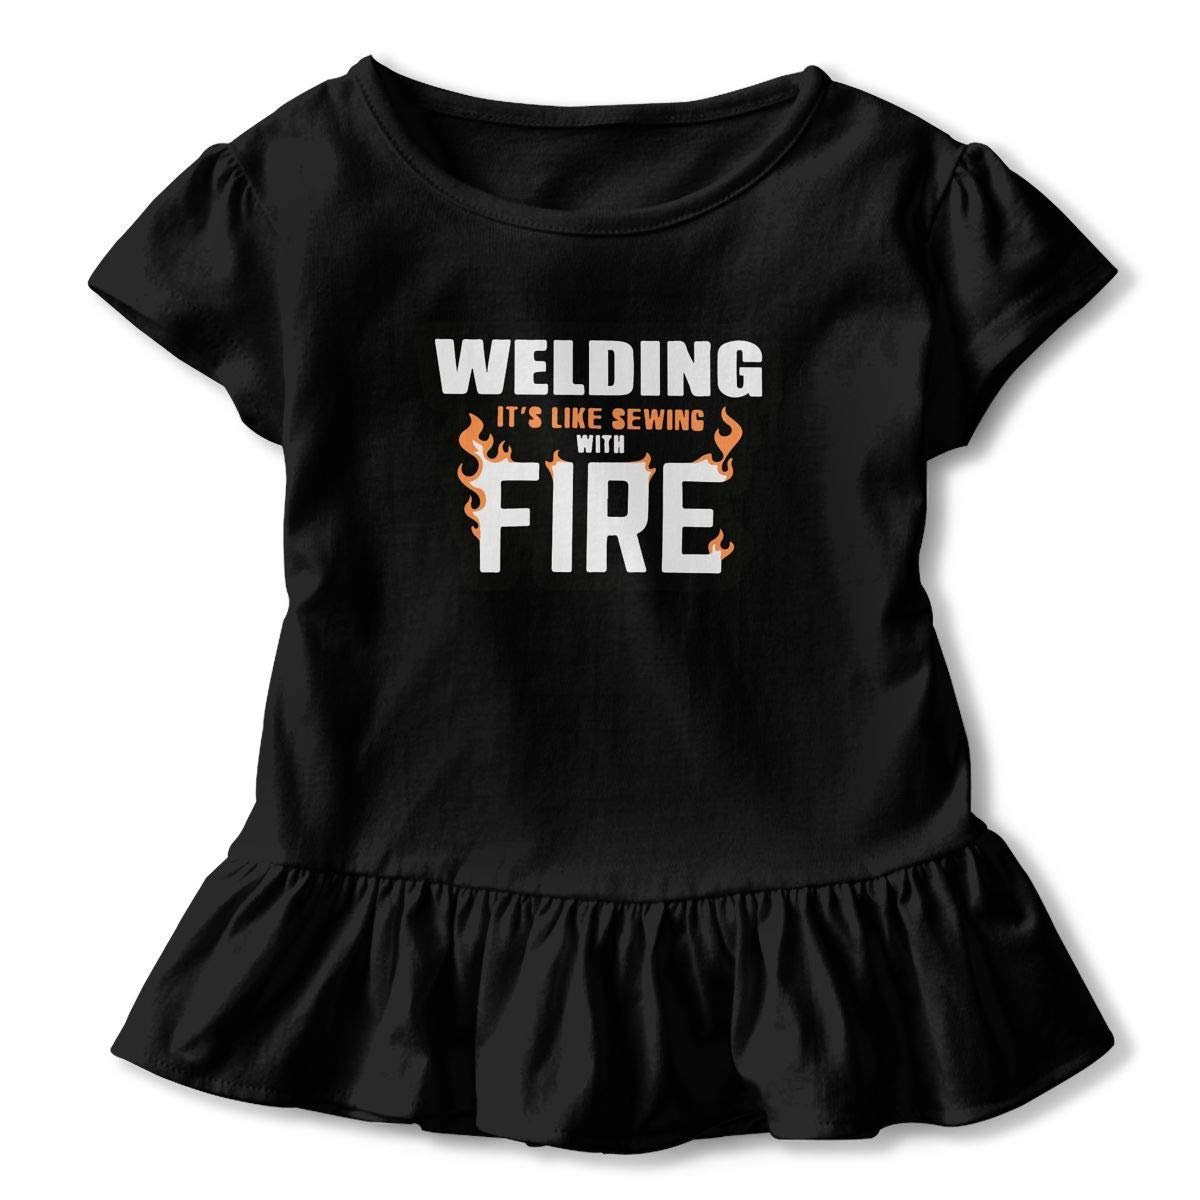 PMsunglasses Short Sleeve Welding Its Like Sewing with Fire T-Shirts for Children Casual Sweatshirt with Falbala 2-6T